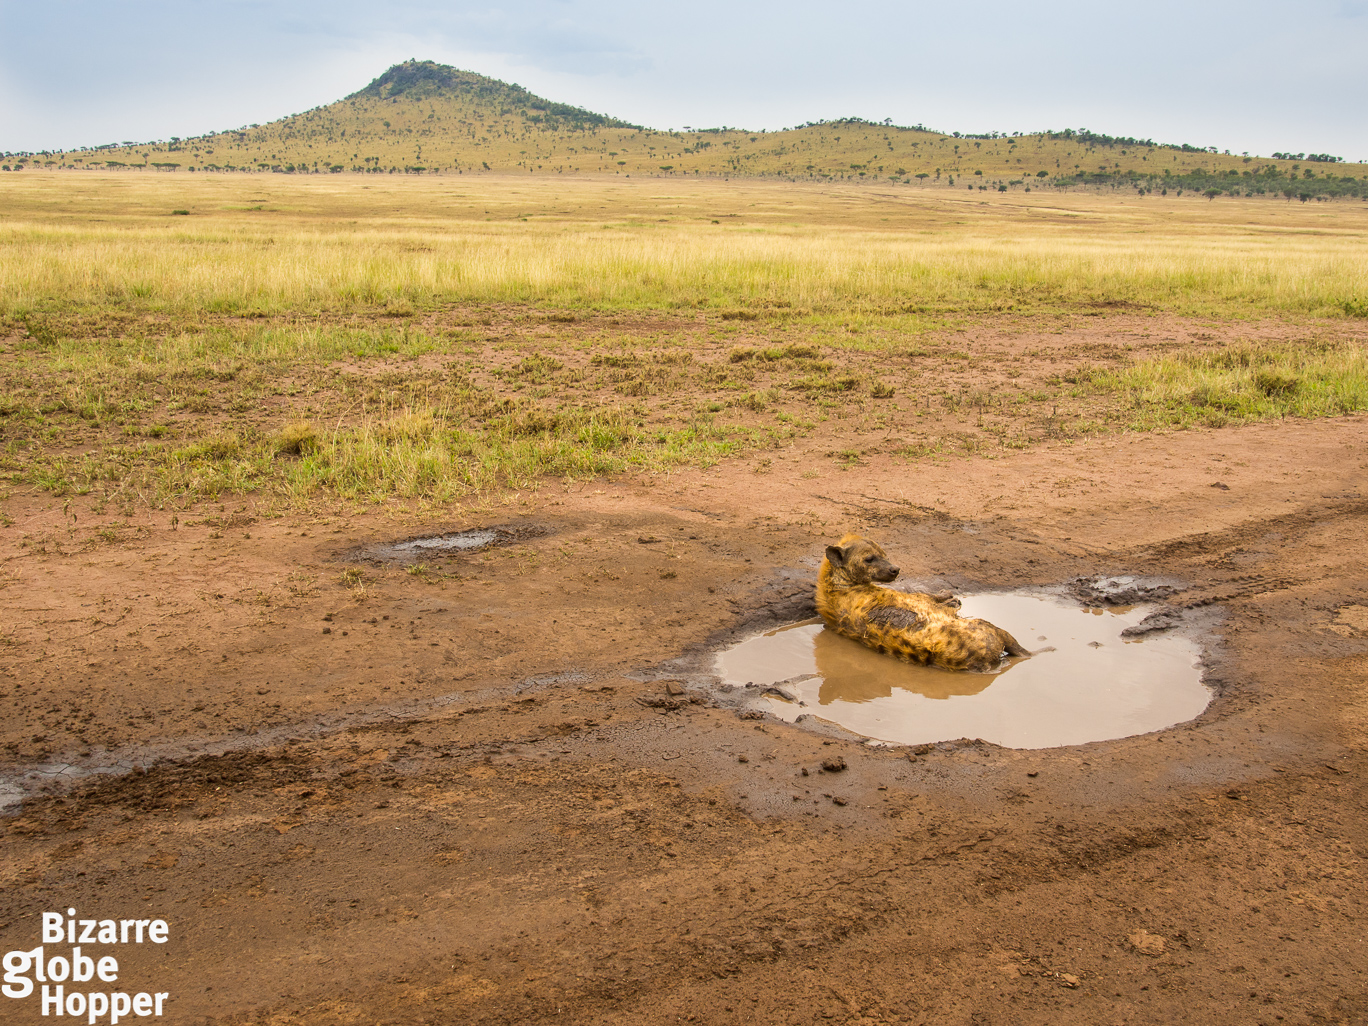 How To Find The Best Wildlife Sightings In Serengeti National Park The Bizarre Globe Hopper